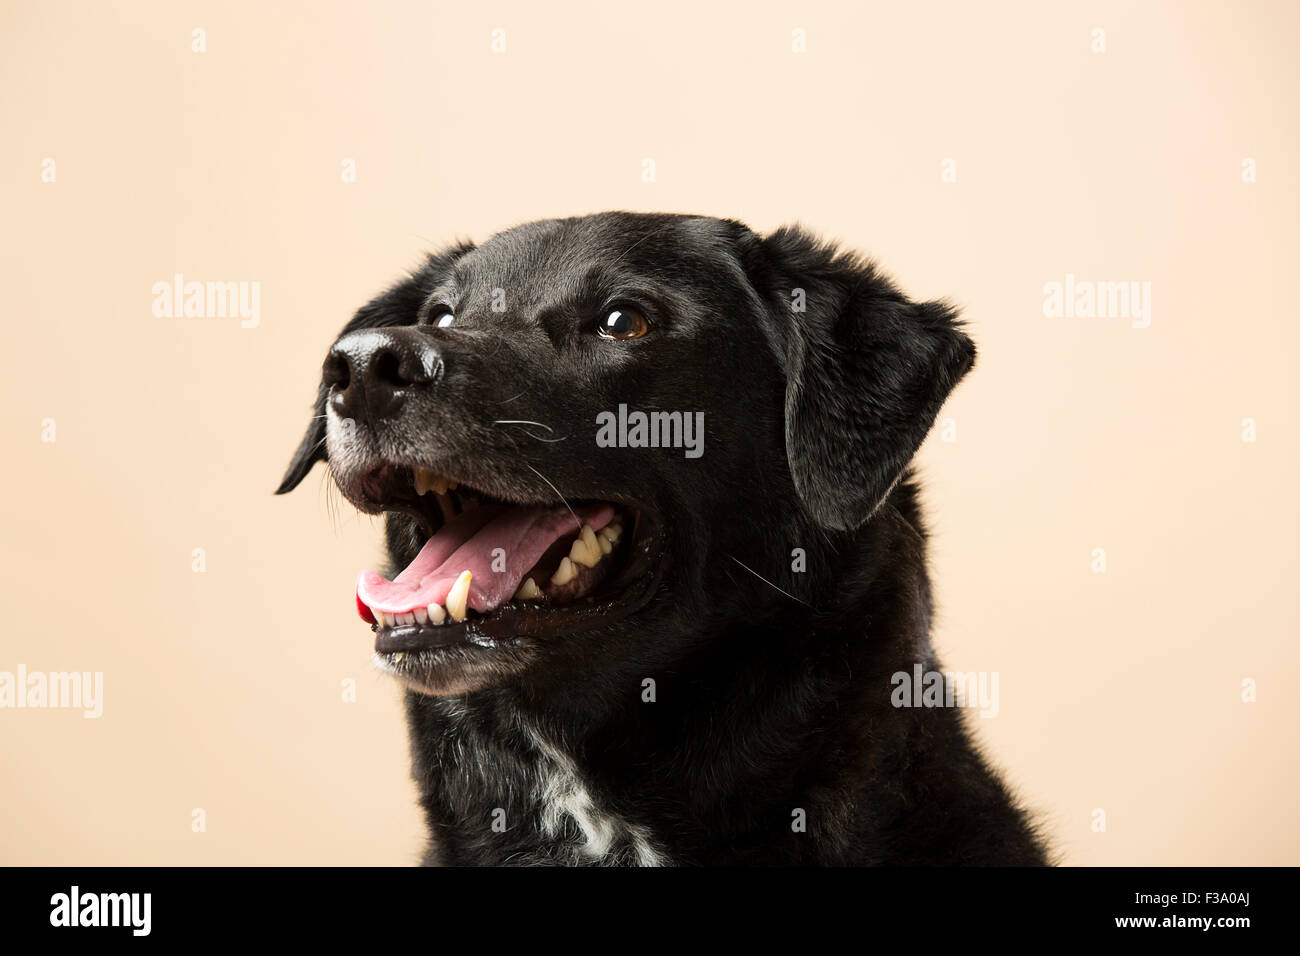 Portrait of a black dog smiling against a cream backdrop - Stock Image